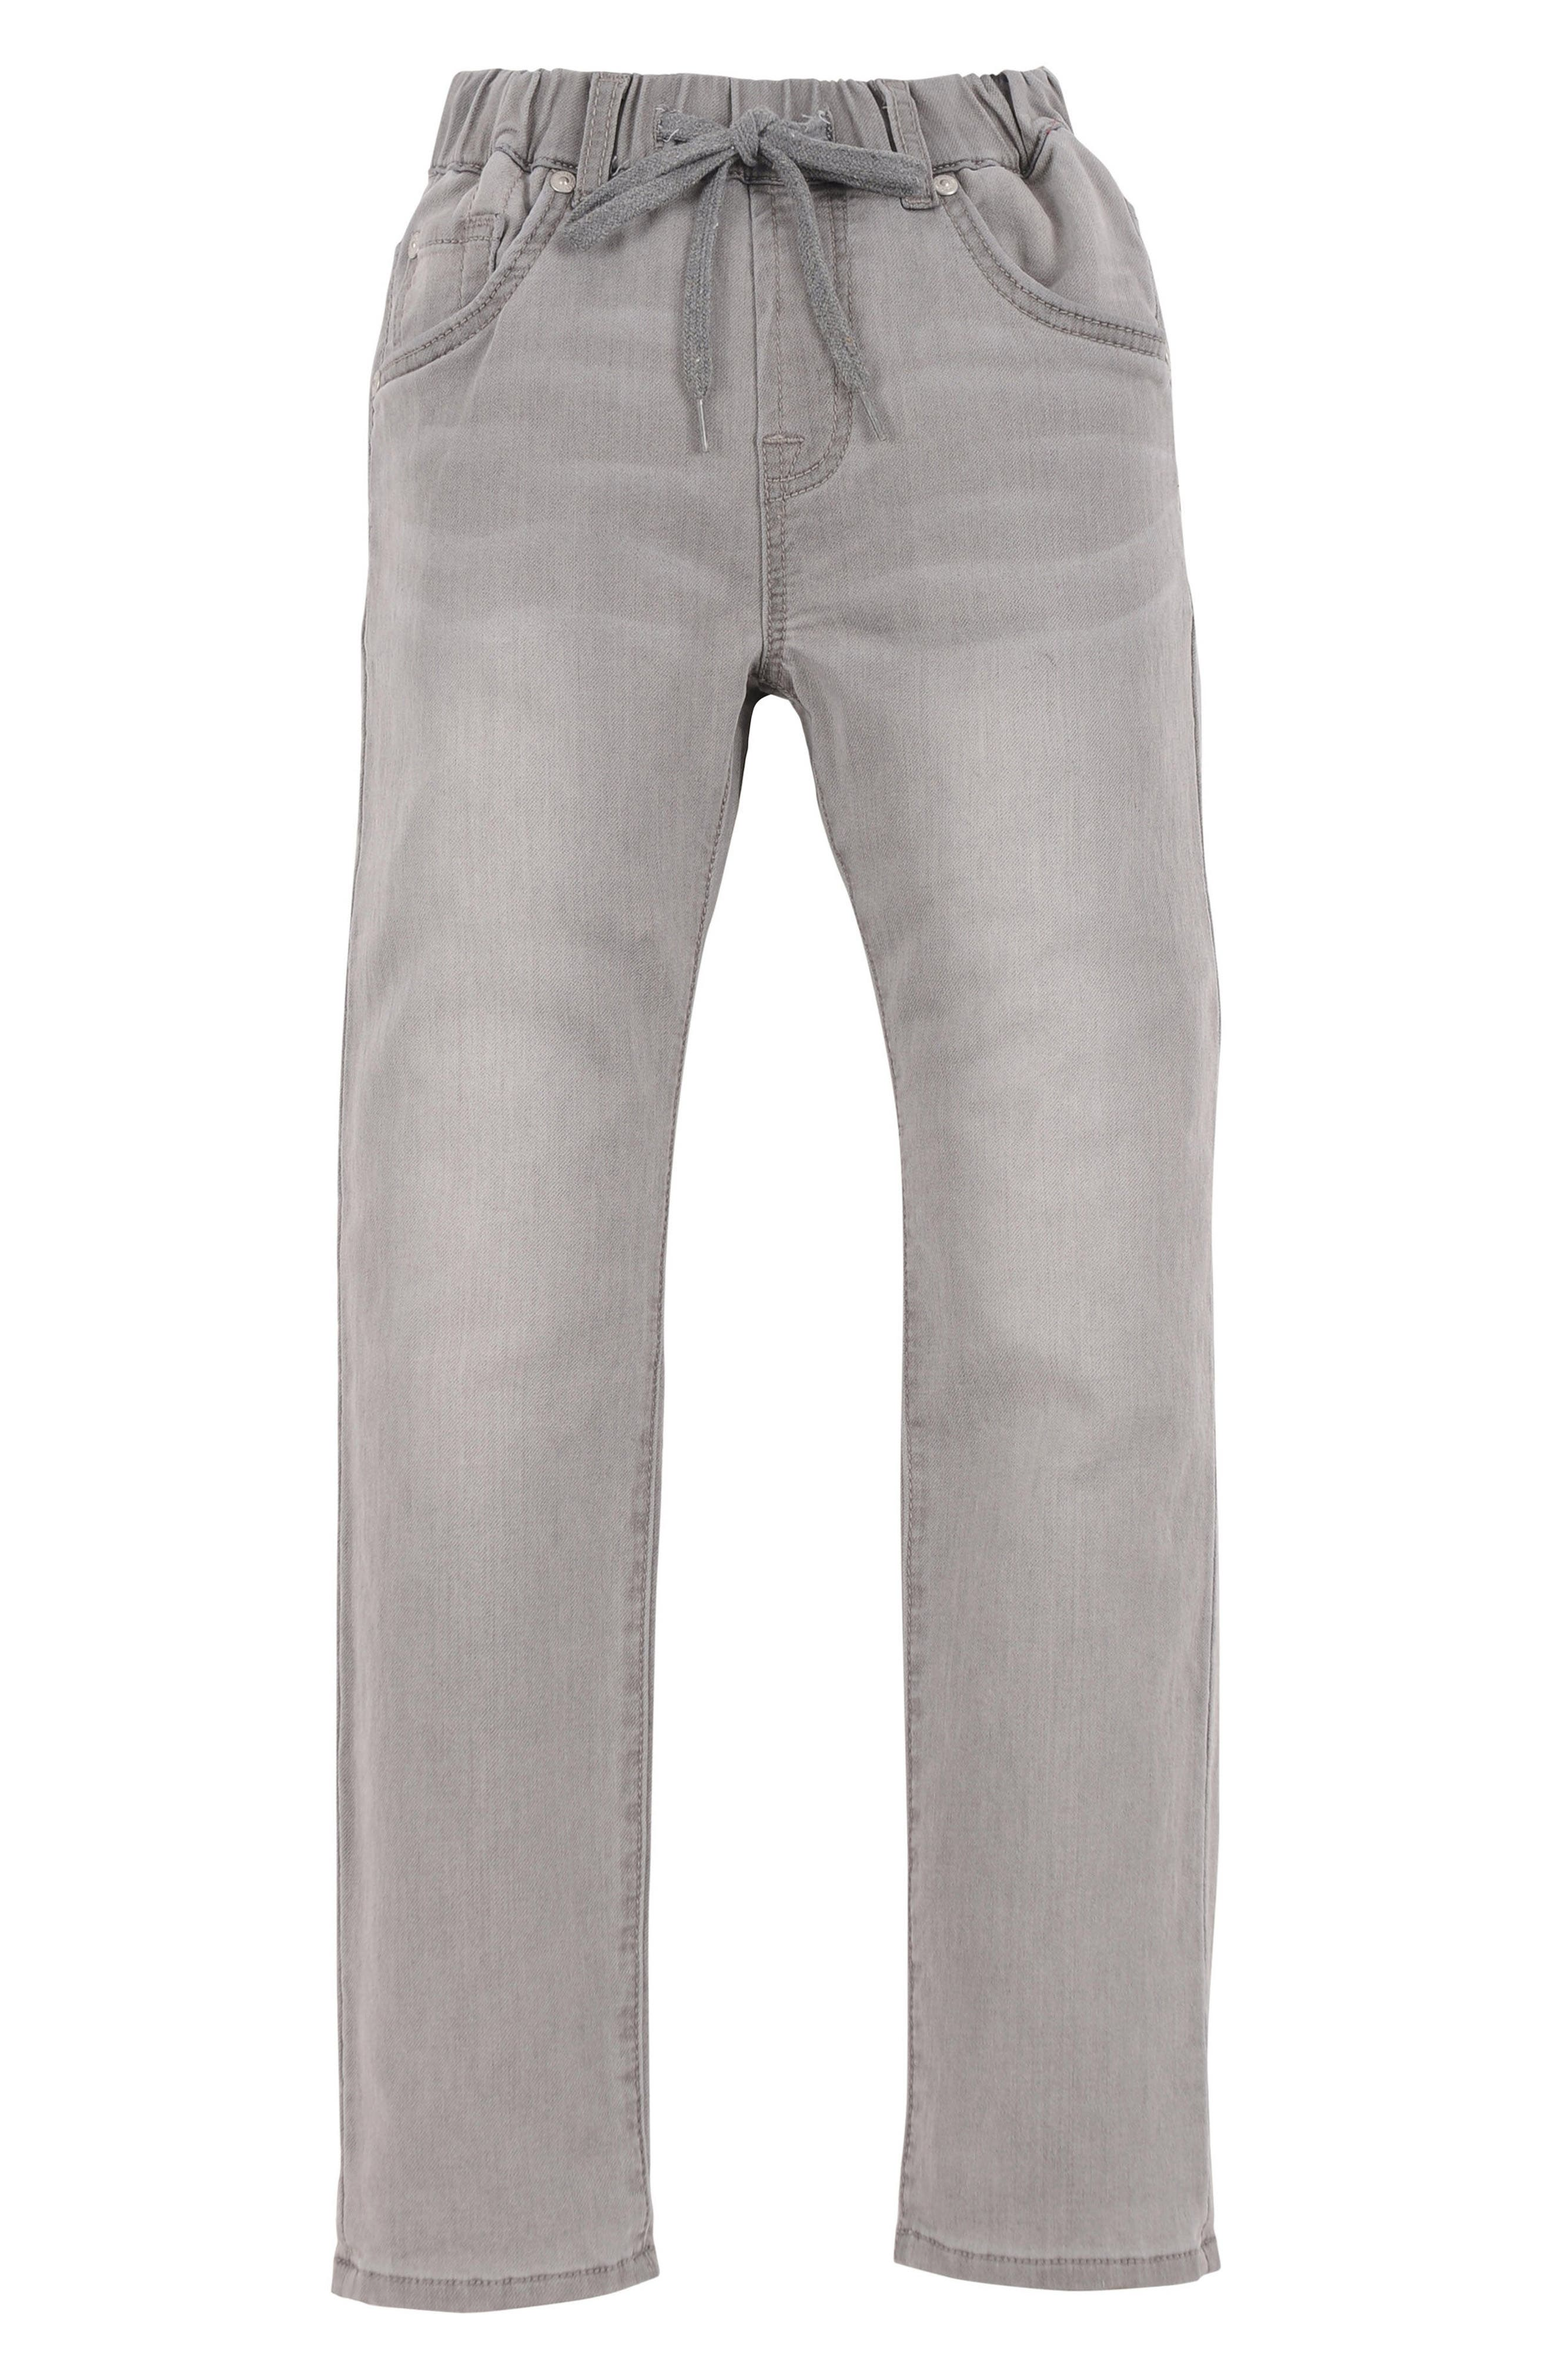 Jogger Jeans,                         Main,                         color, Washed Grey